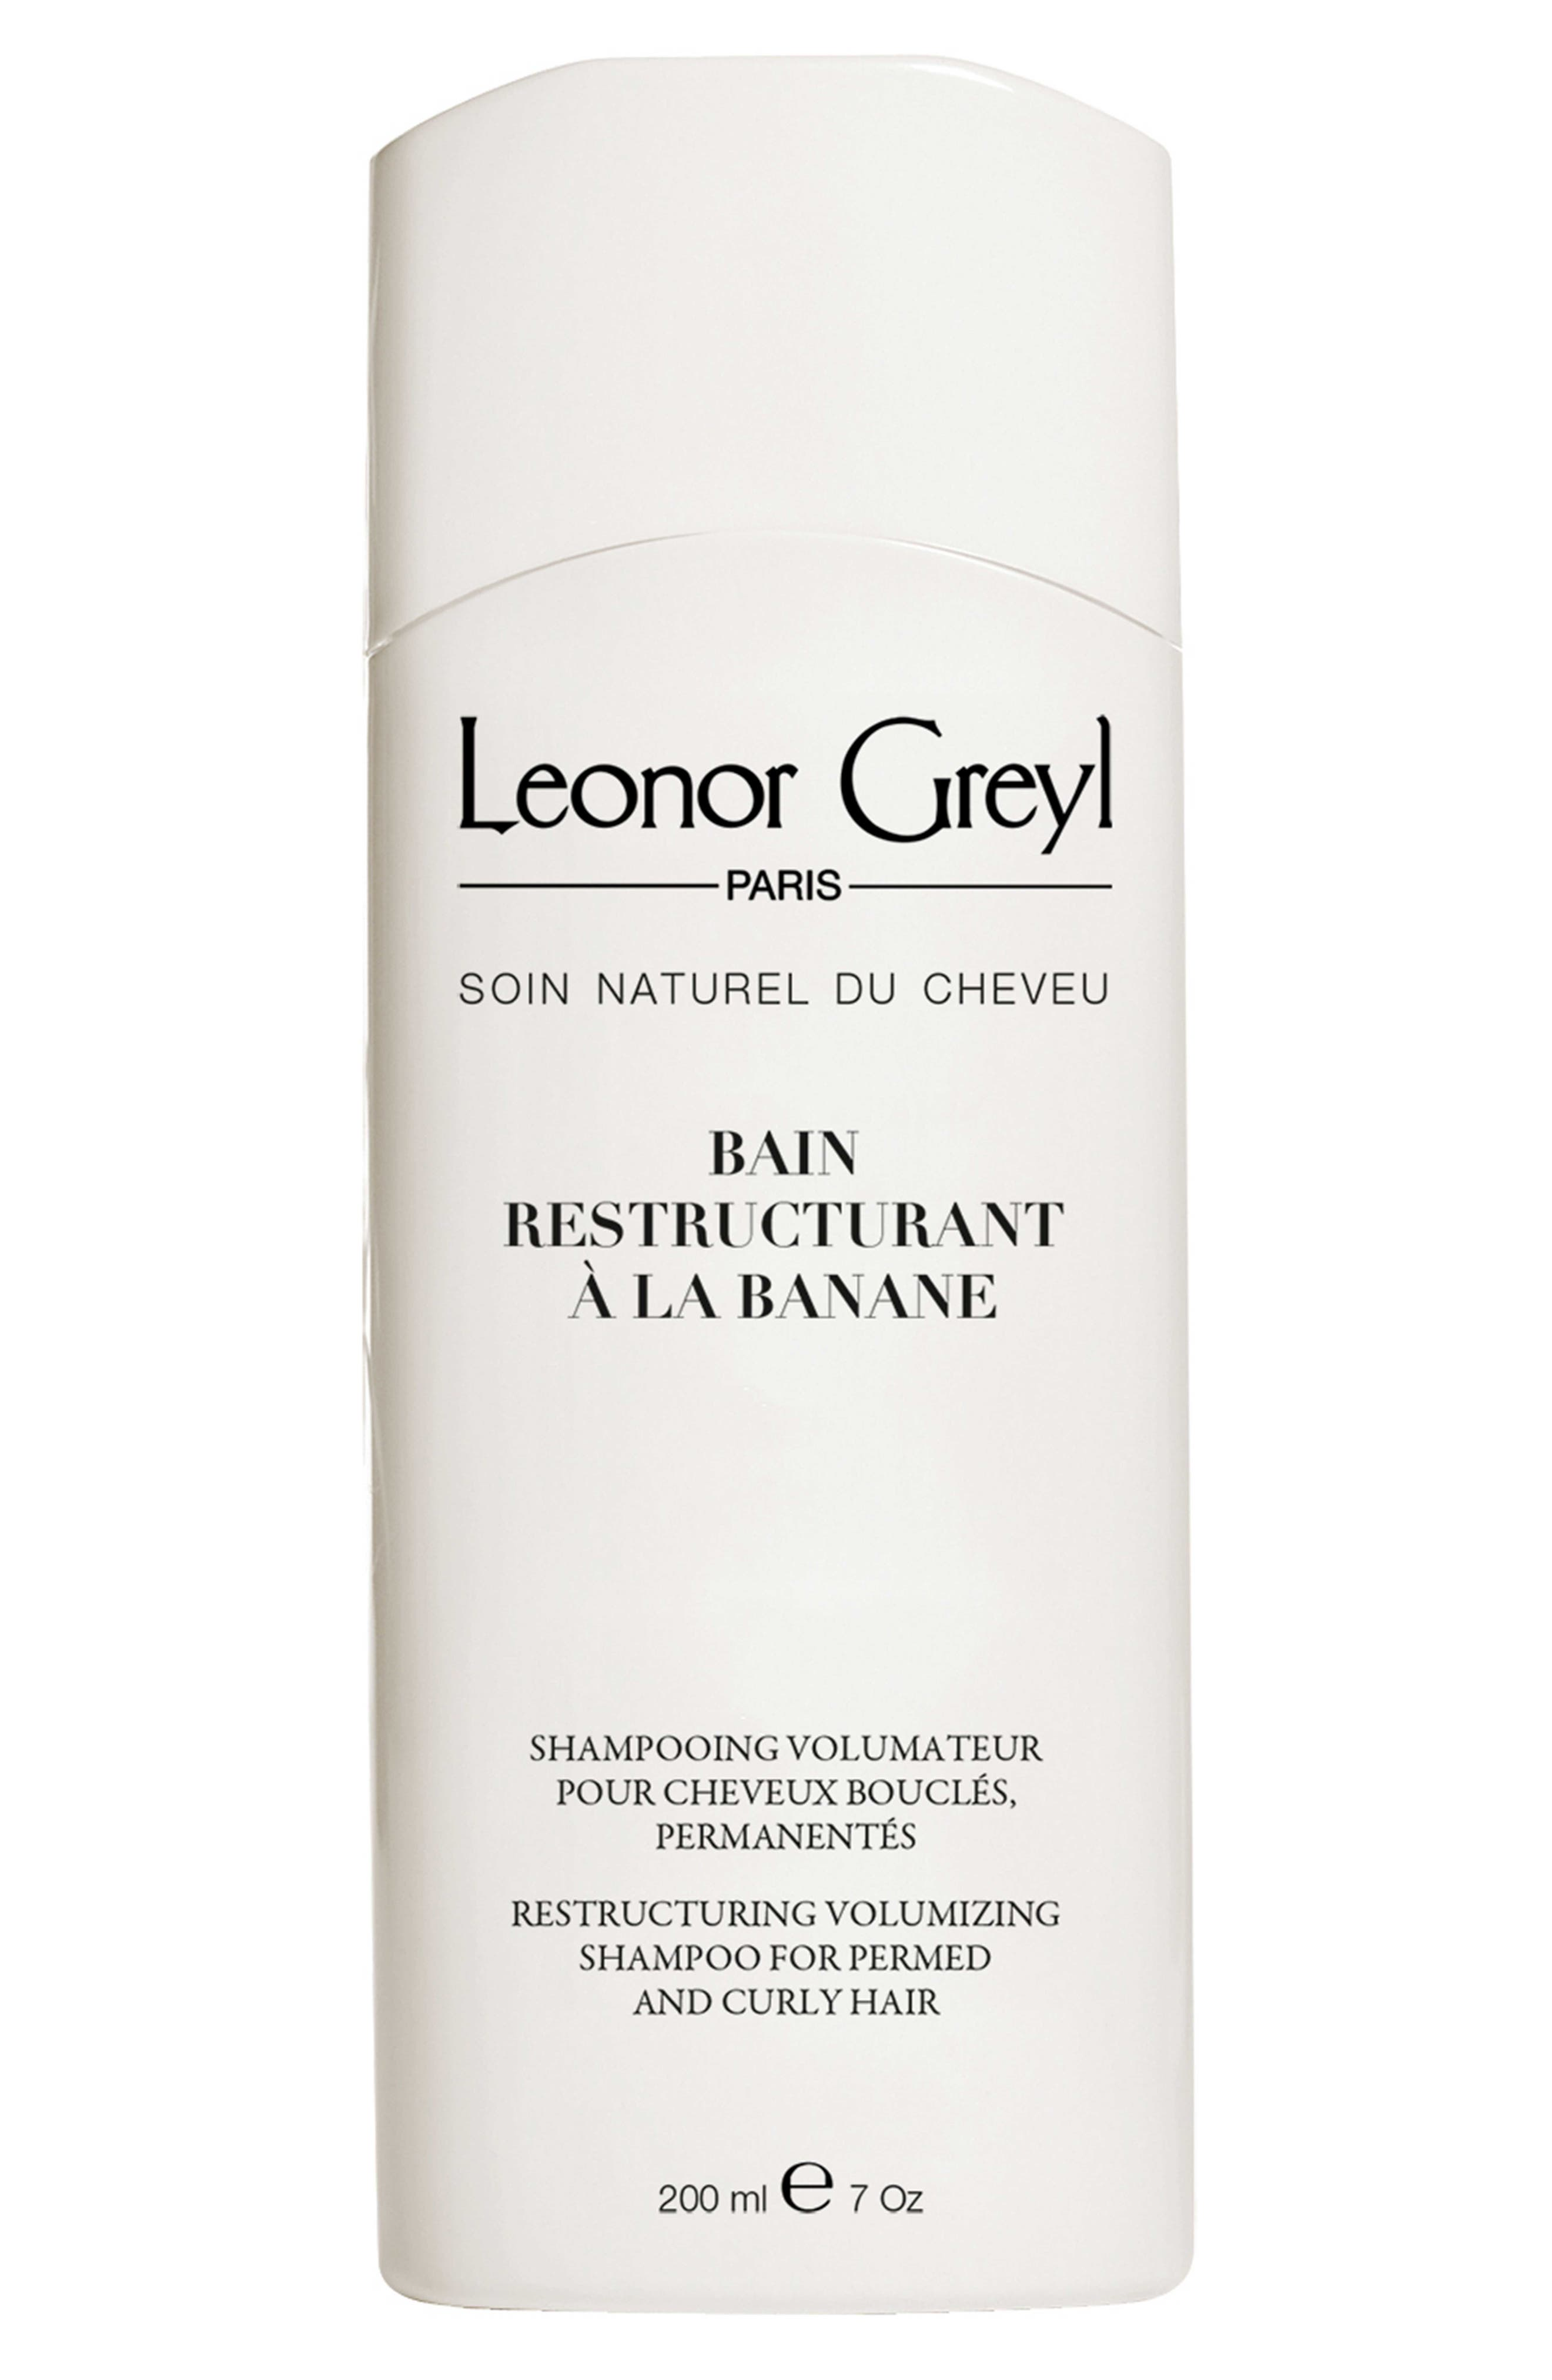 Alternate Image 1 Selected - Leonor Greyl PARIS 'À la Banane' Restructuring Shampoo